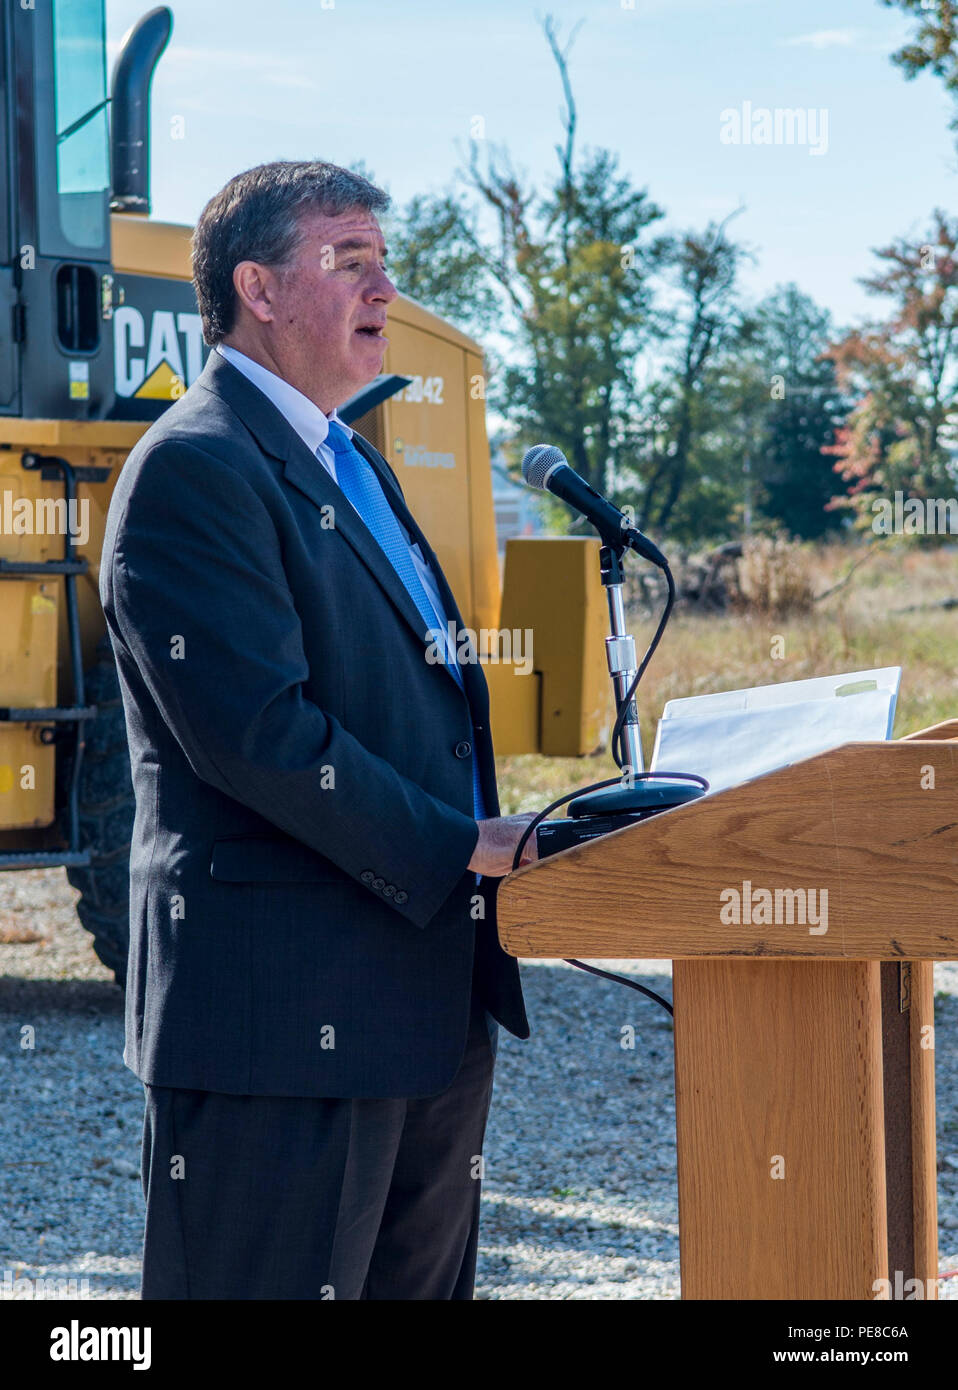 Army Public Health Center breaks ground on $210M laboratory at Aberdeen Proving Ground. Army Public Health Center Director Mr. John Resta addresses the crowd at a ground breaking ceremony on Aberdeen Proving Grounds, Md. Stock Photo